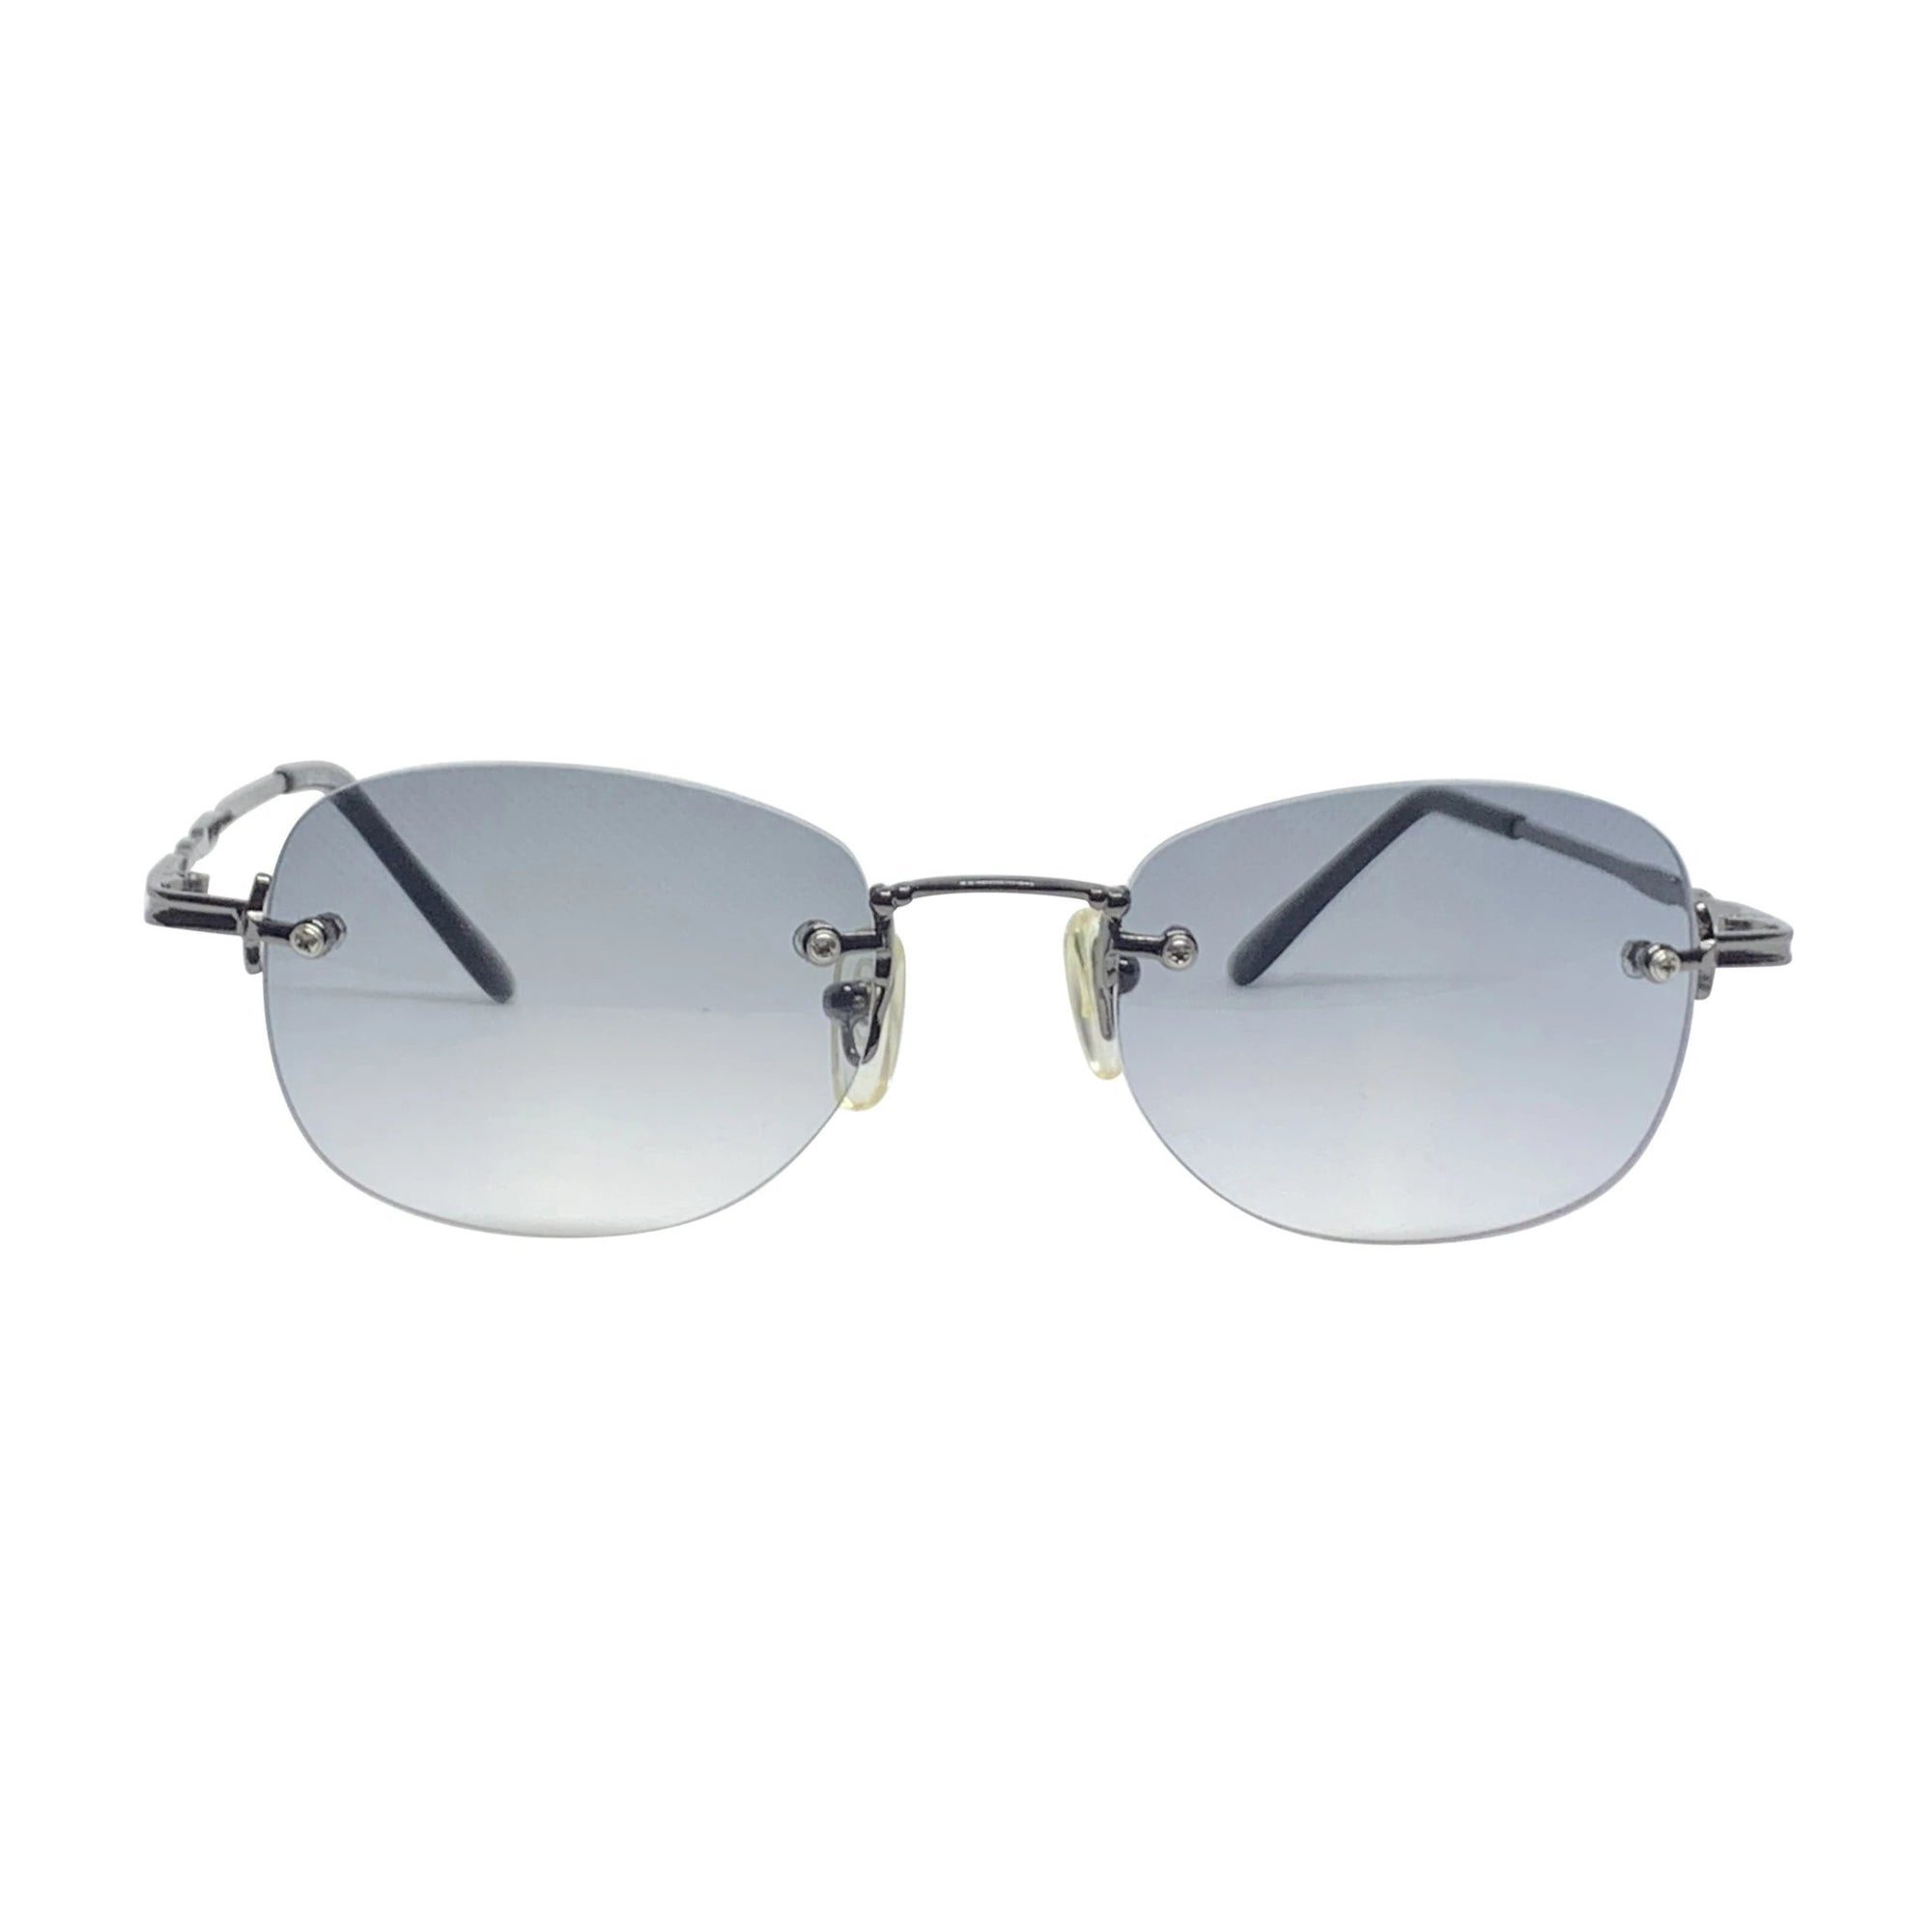 ESSENCE Steel and Smoke Rimless Sunnies